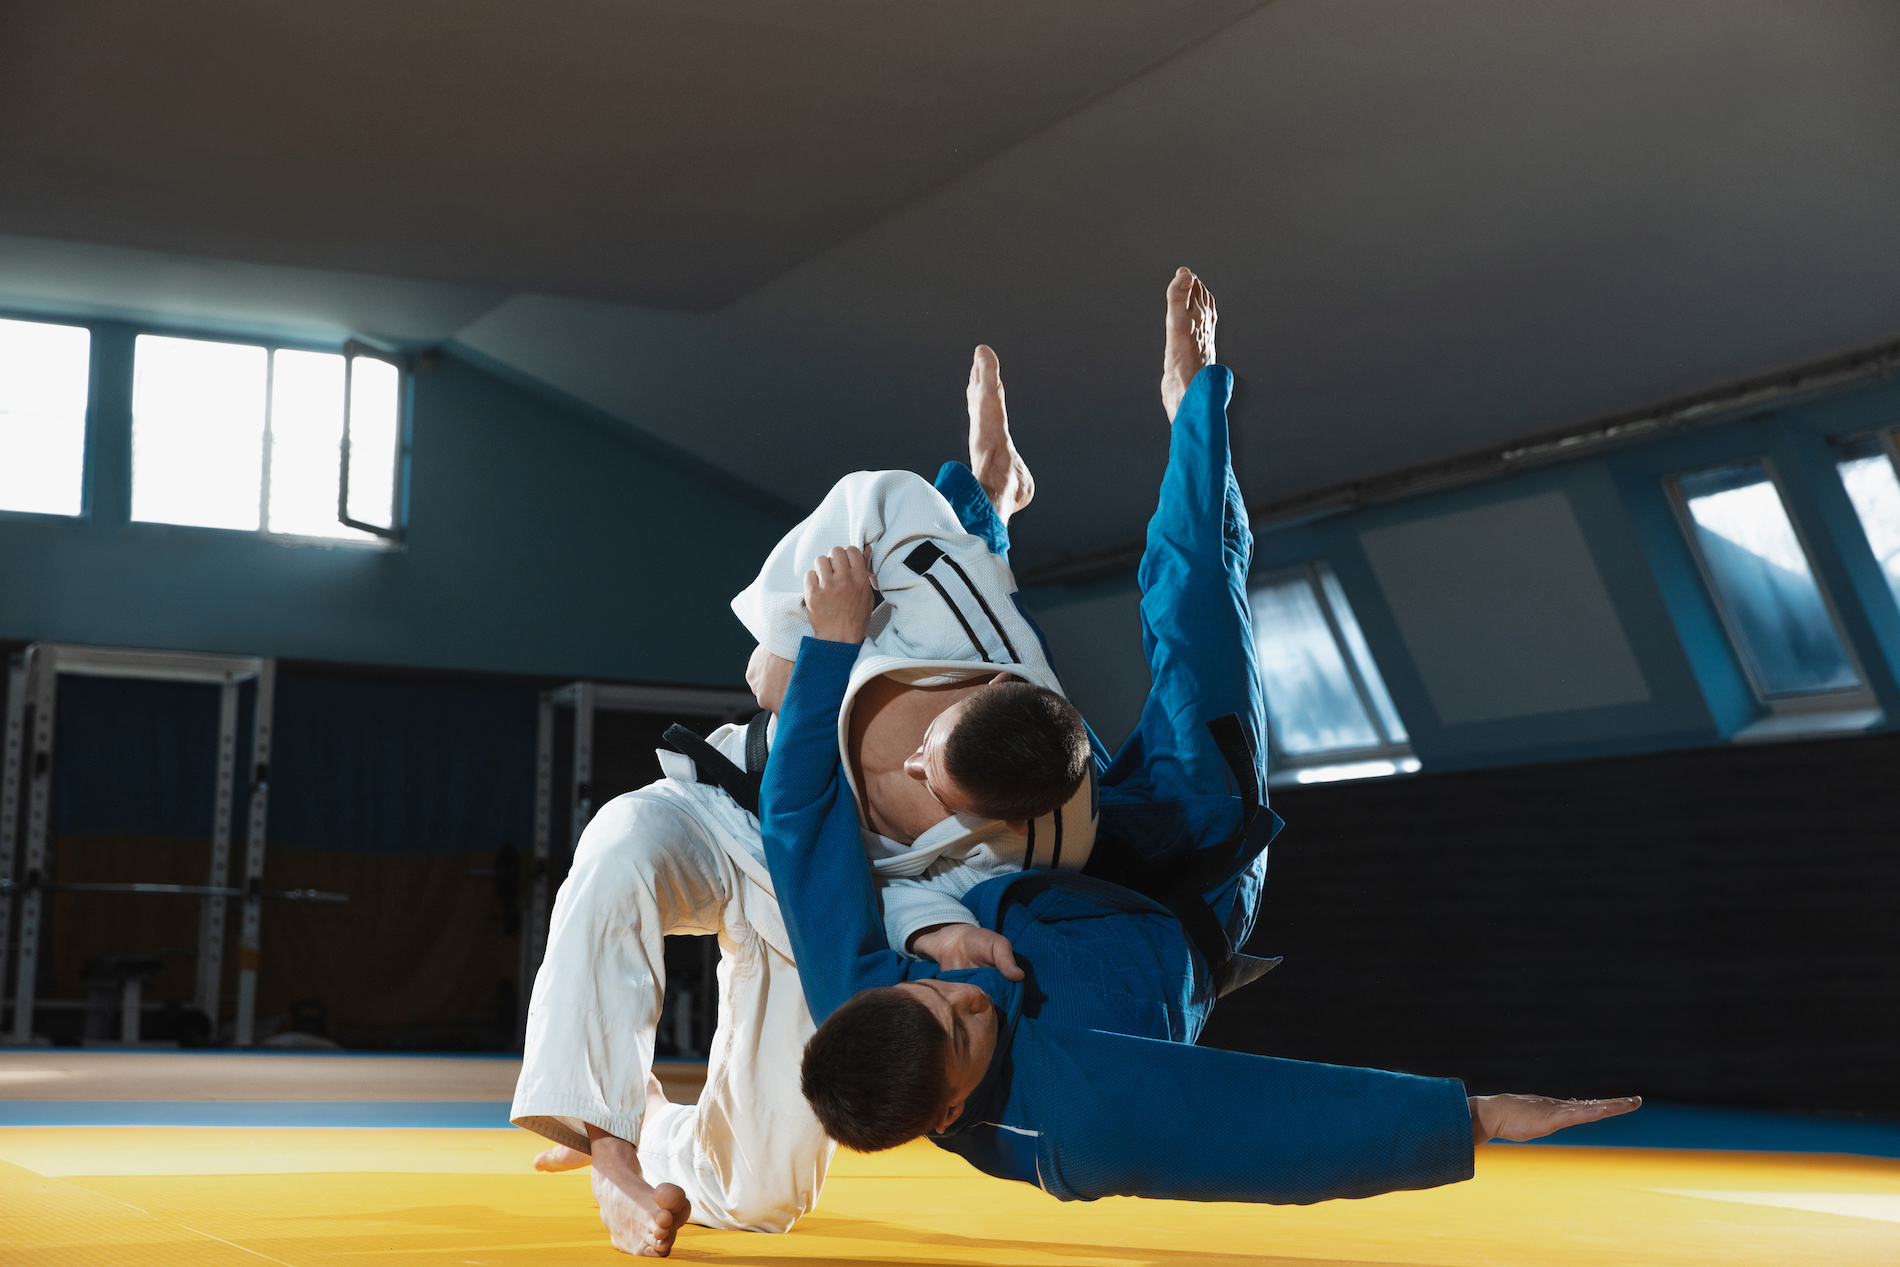 World Judo Championships in Budapest to attract top athletes